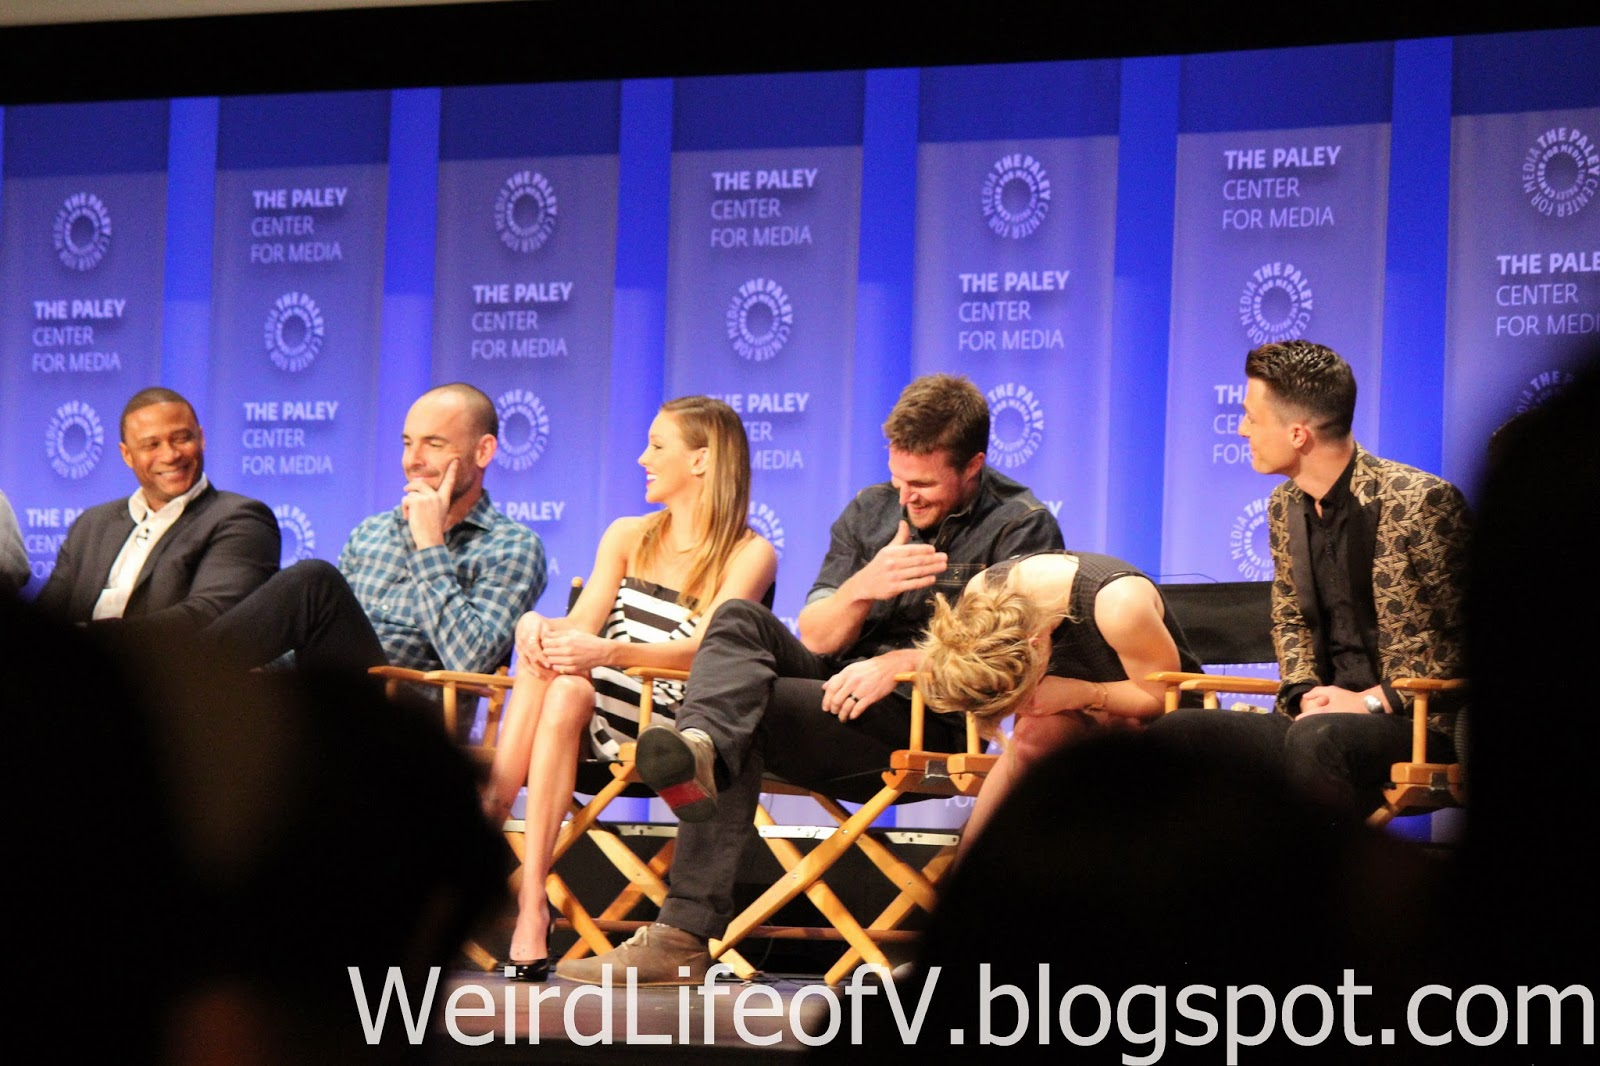 Arrow Cast: David Ramsey, Paul Blackthorne, Katie Cassidy, Stephen Amell, Emily Bett Rickards, and Colton Haynes